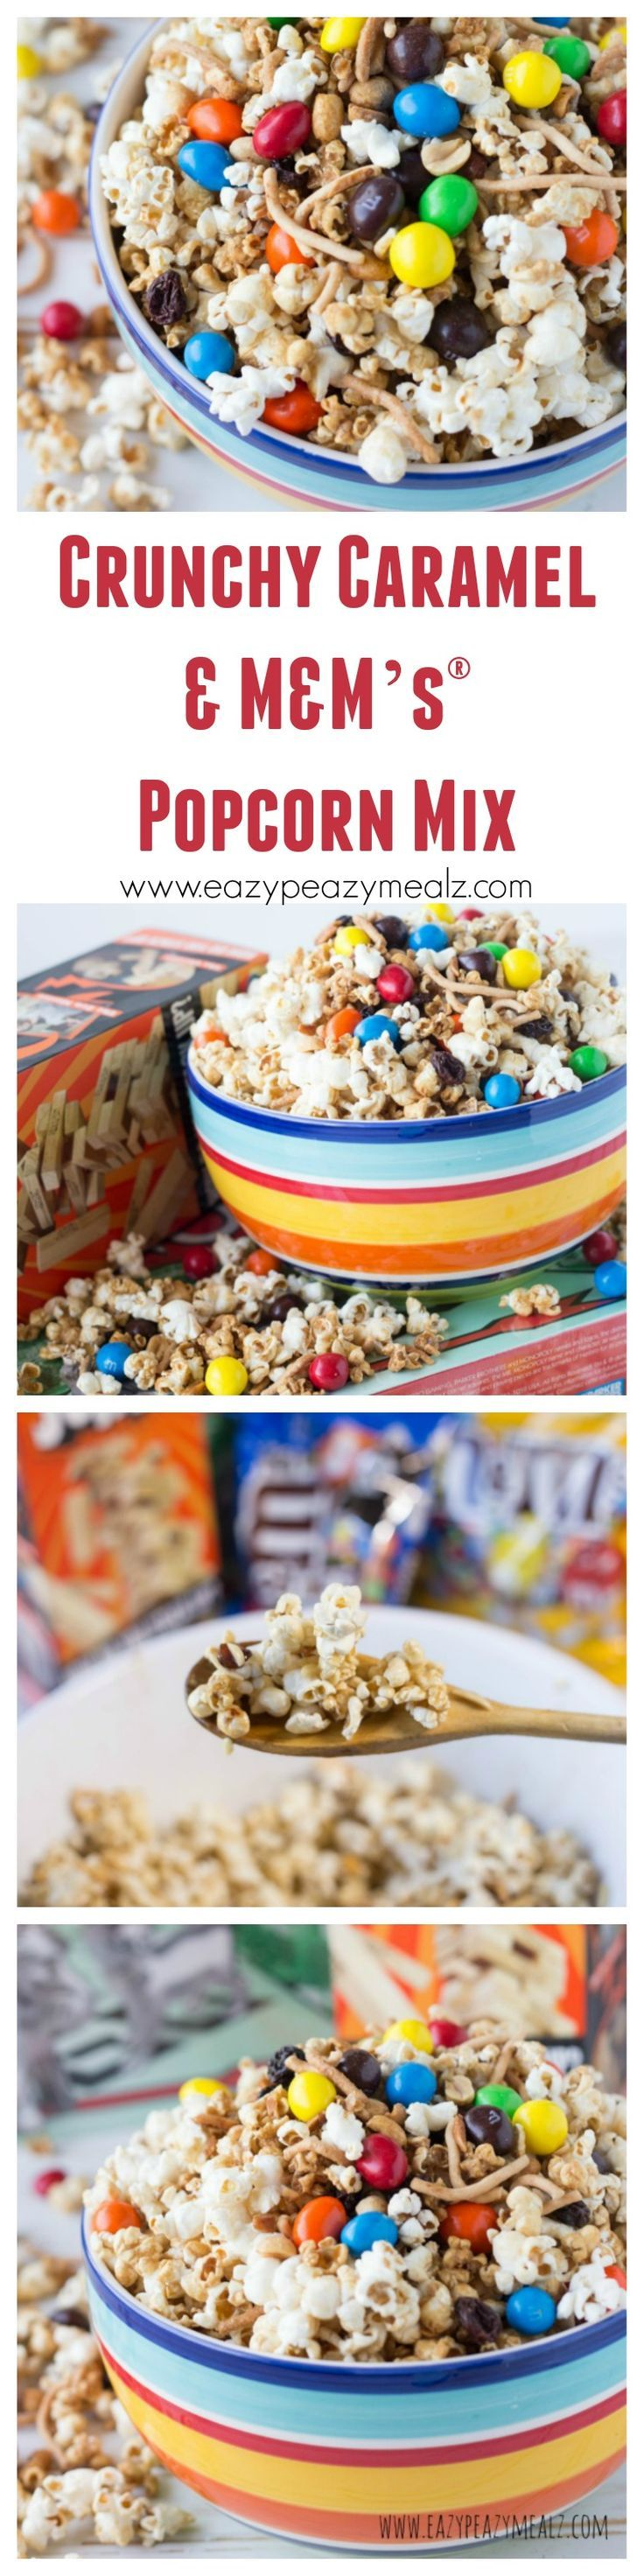 This popcorn is quick, easy to grab, and that won't get your hands sticky and ruin the game. This Crunchy Caramel & M&M's® Popcorn Mix offers something for everyone crunch, chocolate, caramel, and salt without a gooey mess!